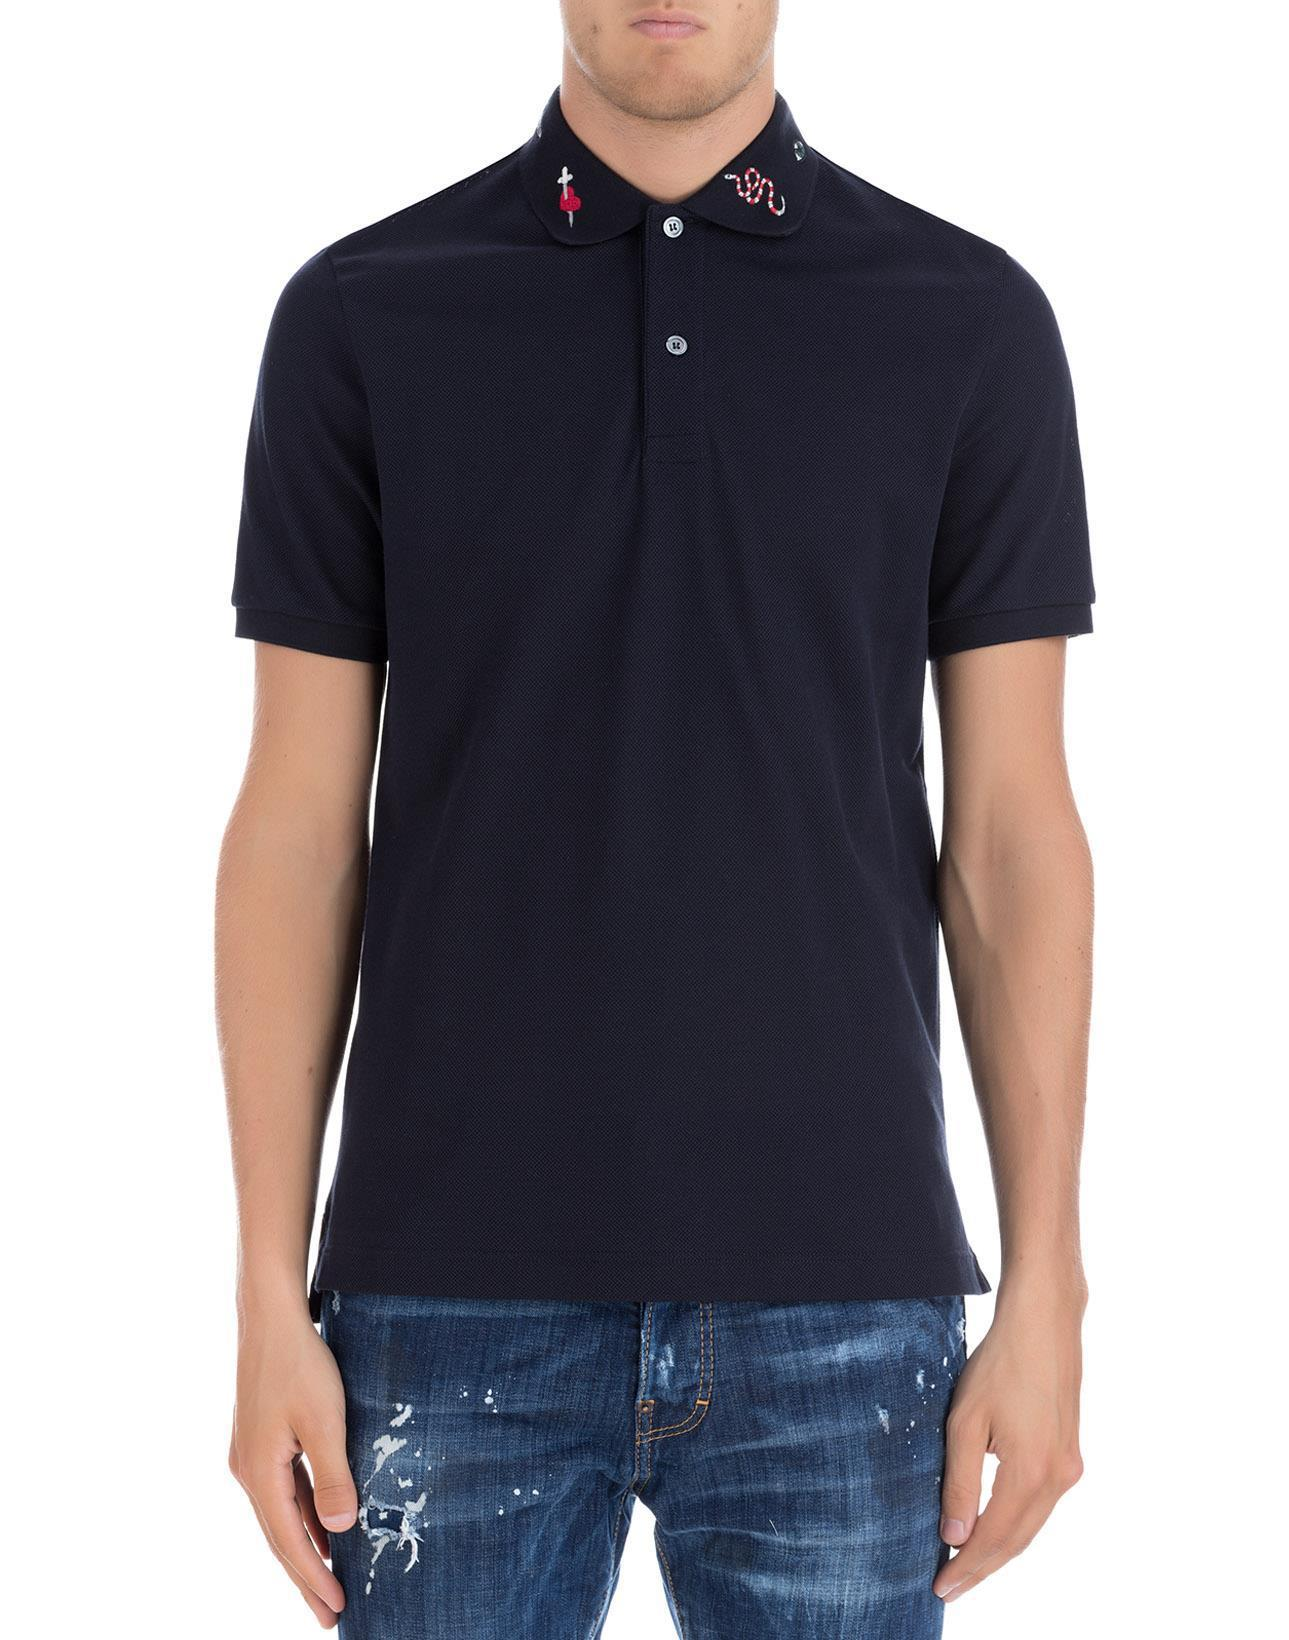 63b82f62b Gucci Embroidered Collar Polo Shirt in Blue for Men - Lyst